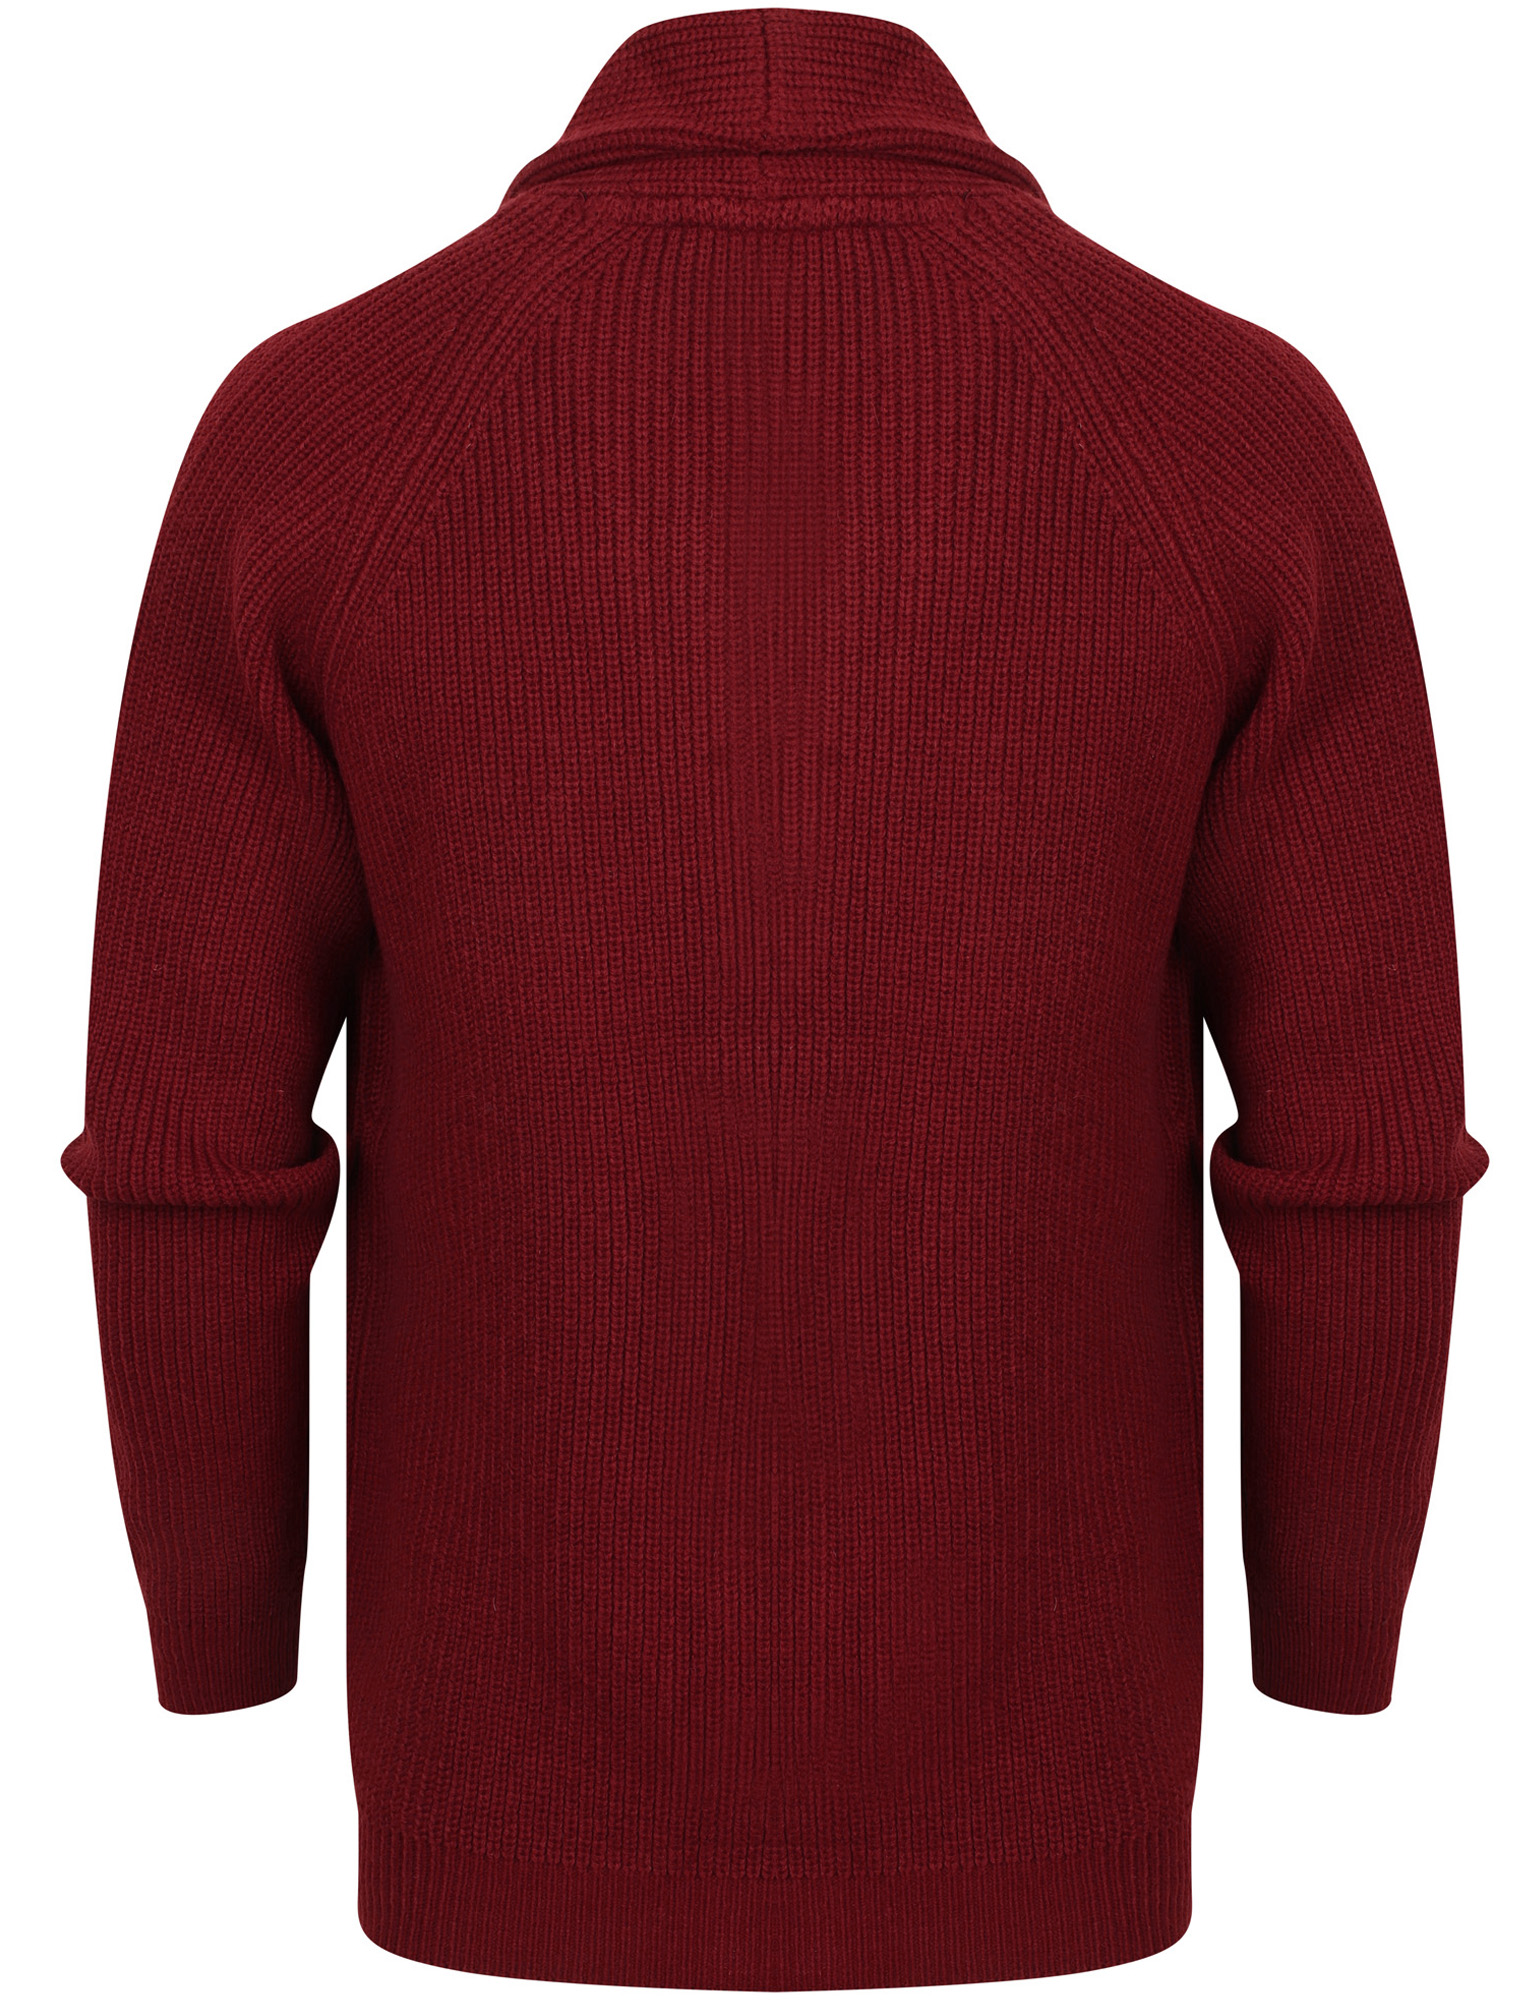 Tokyo-Laundry-Mens-Cardigan-Shawl-Neck-Long-Sleeve-Wool-Blend-Knitted-Button-Up thumbnail 7